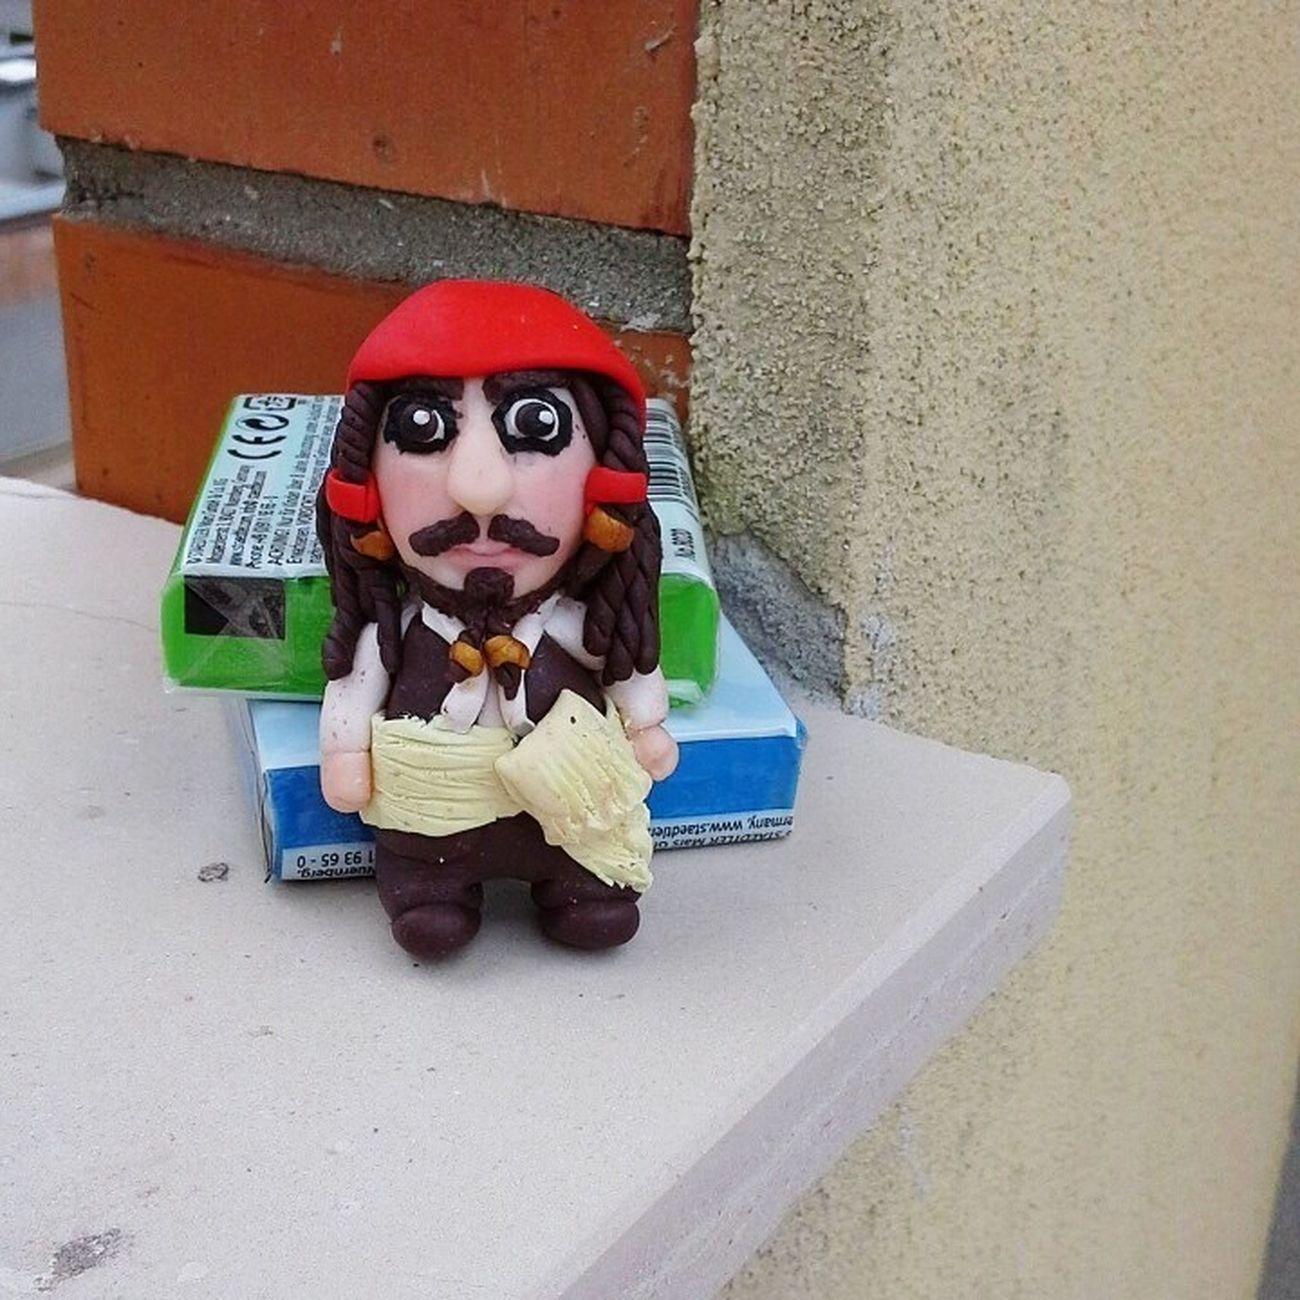 Captain Jack Sparrow Fimolovers Handmade Miniature Film Lovefilm Polymerclay